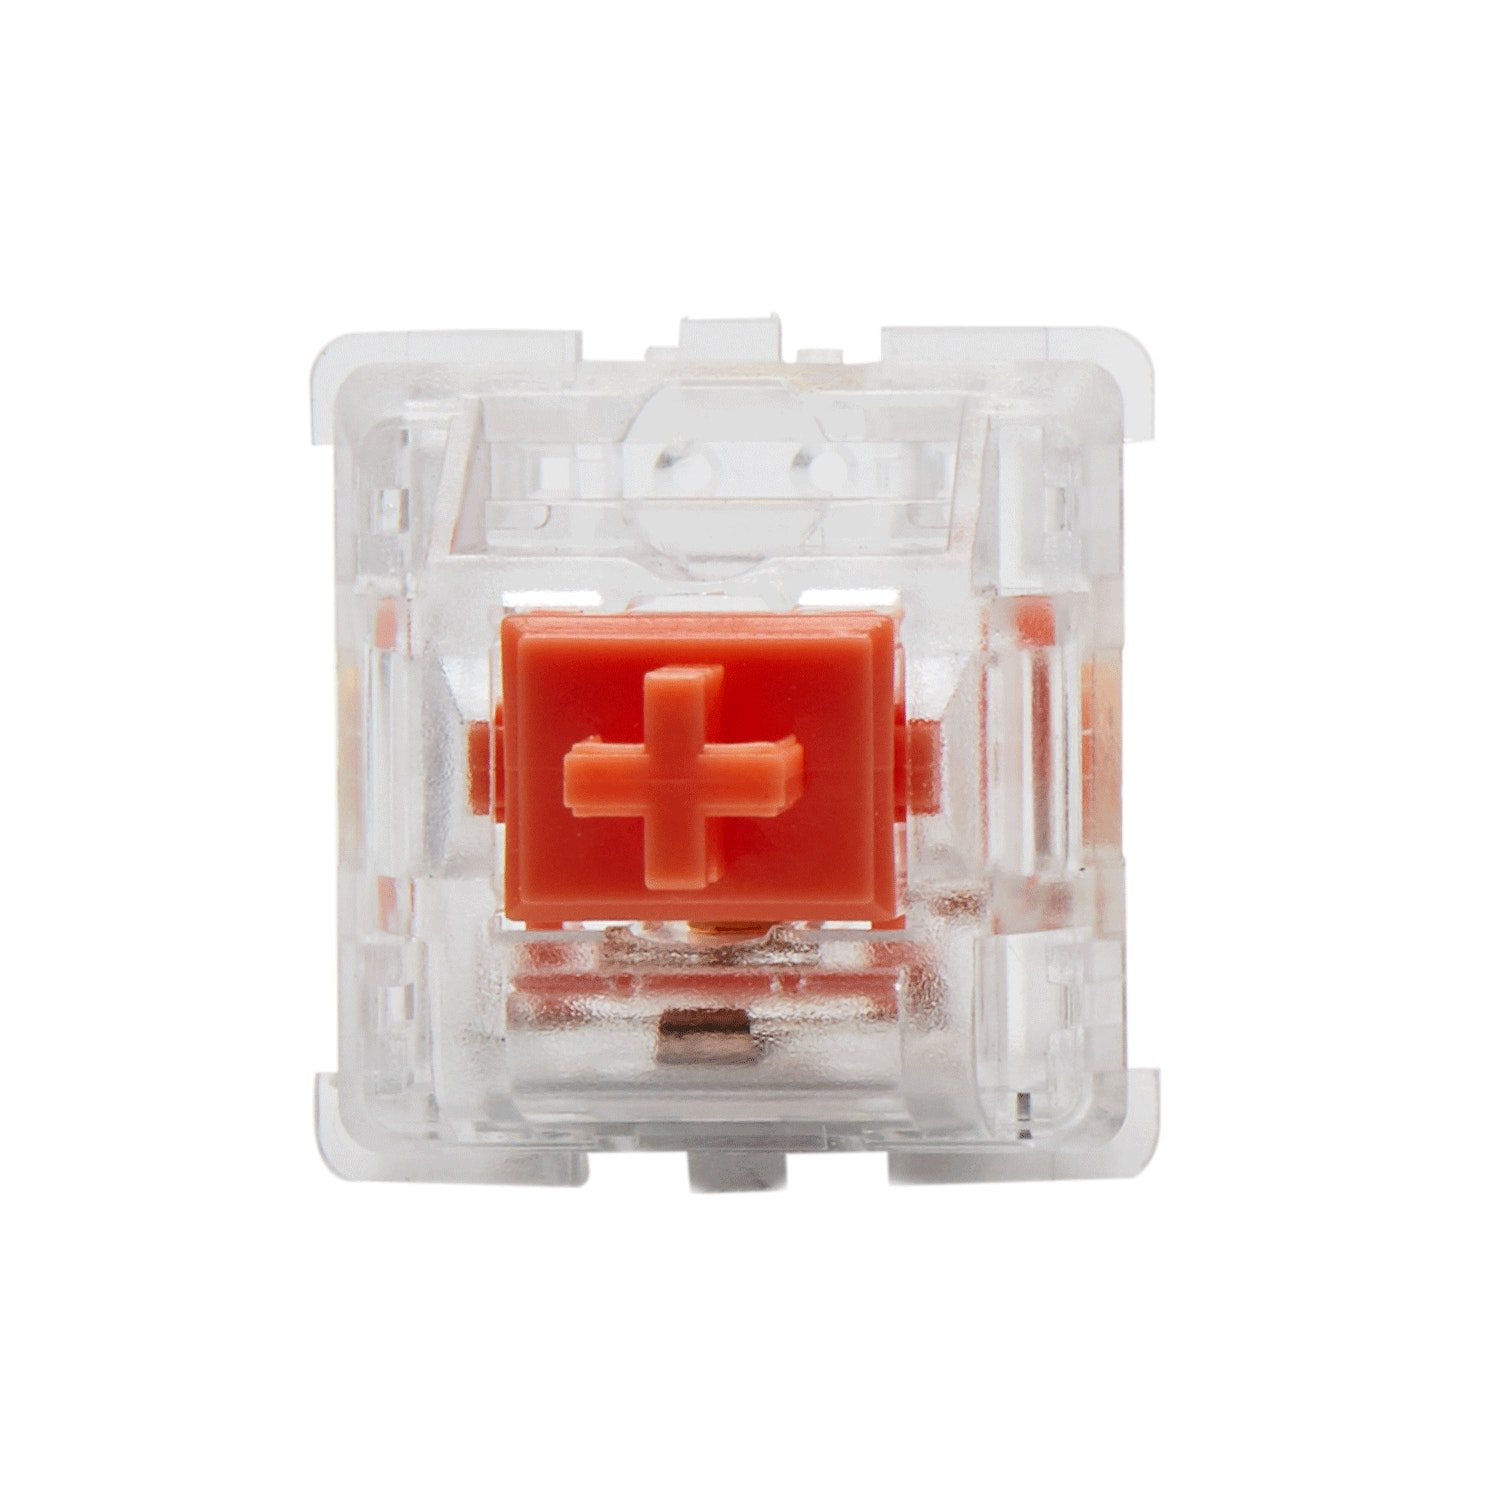 Everglide Switches (70 or 110 Count)